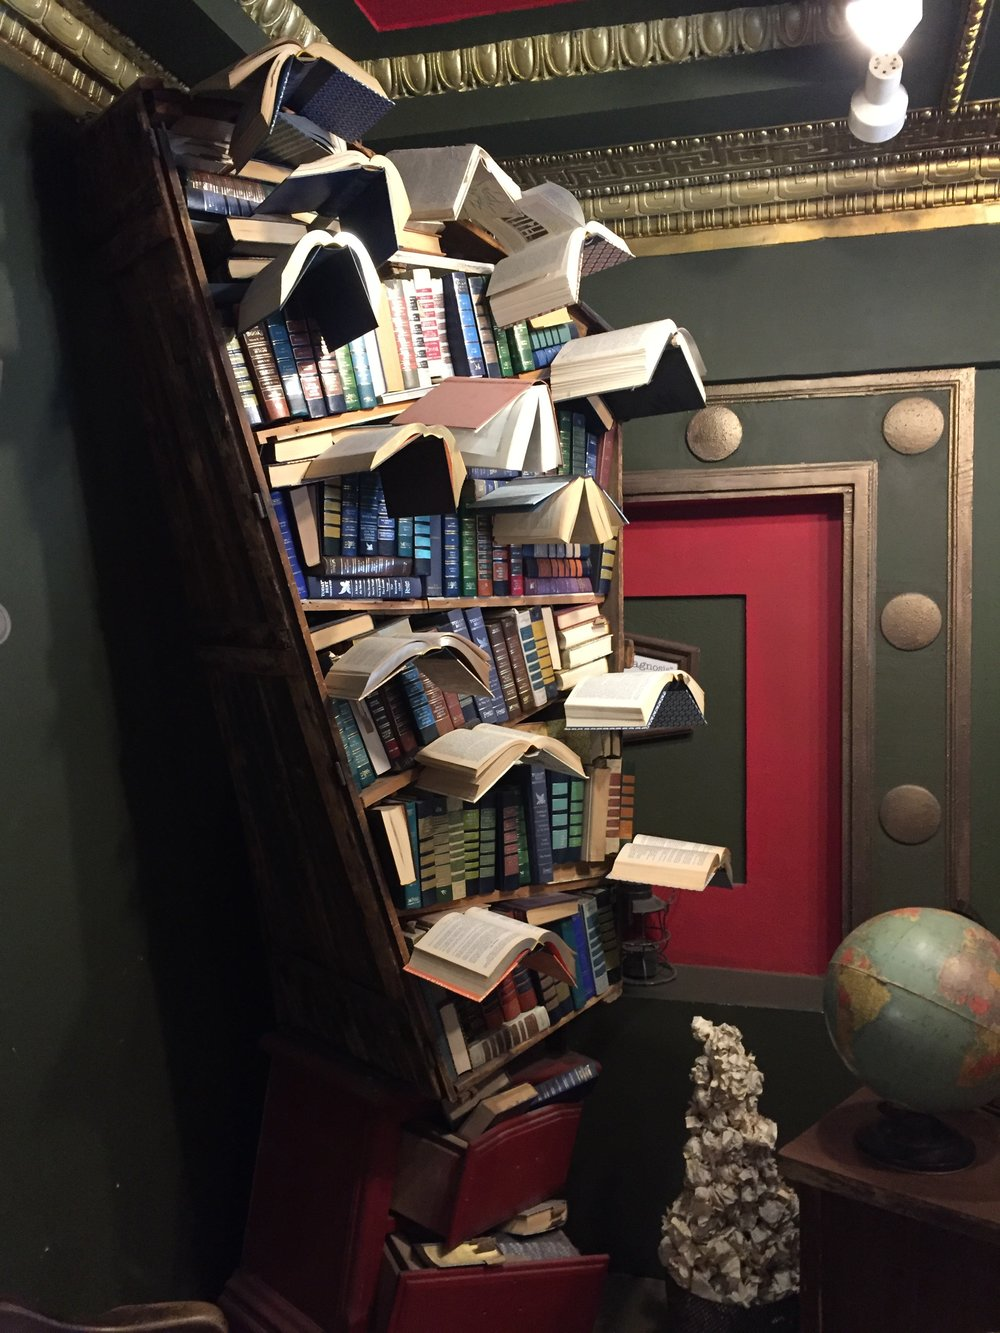 [image description: Another book sculpture where the shelf is oddly shaped––small at the bottom, angular and large at the top. It's packed with old books and other books are placed to look like birds flying off the shelf. There's also a sculpture of a trash can piled high with balls of crumpled paper in a teetering pyramid.]